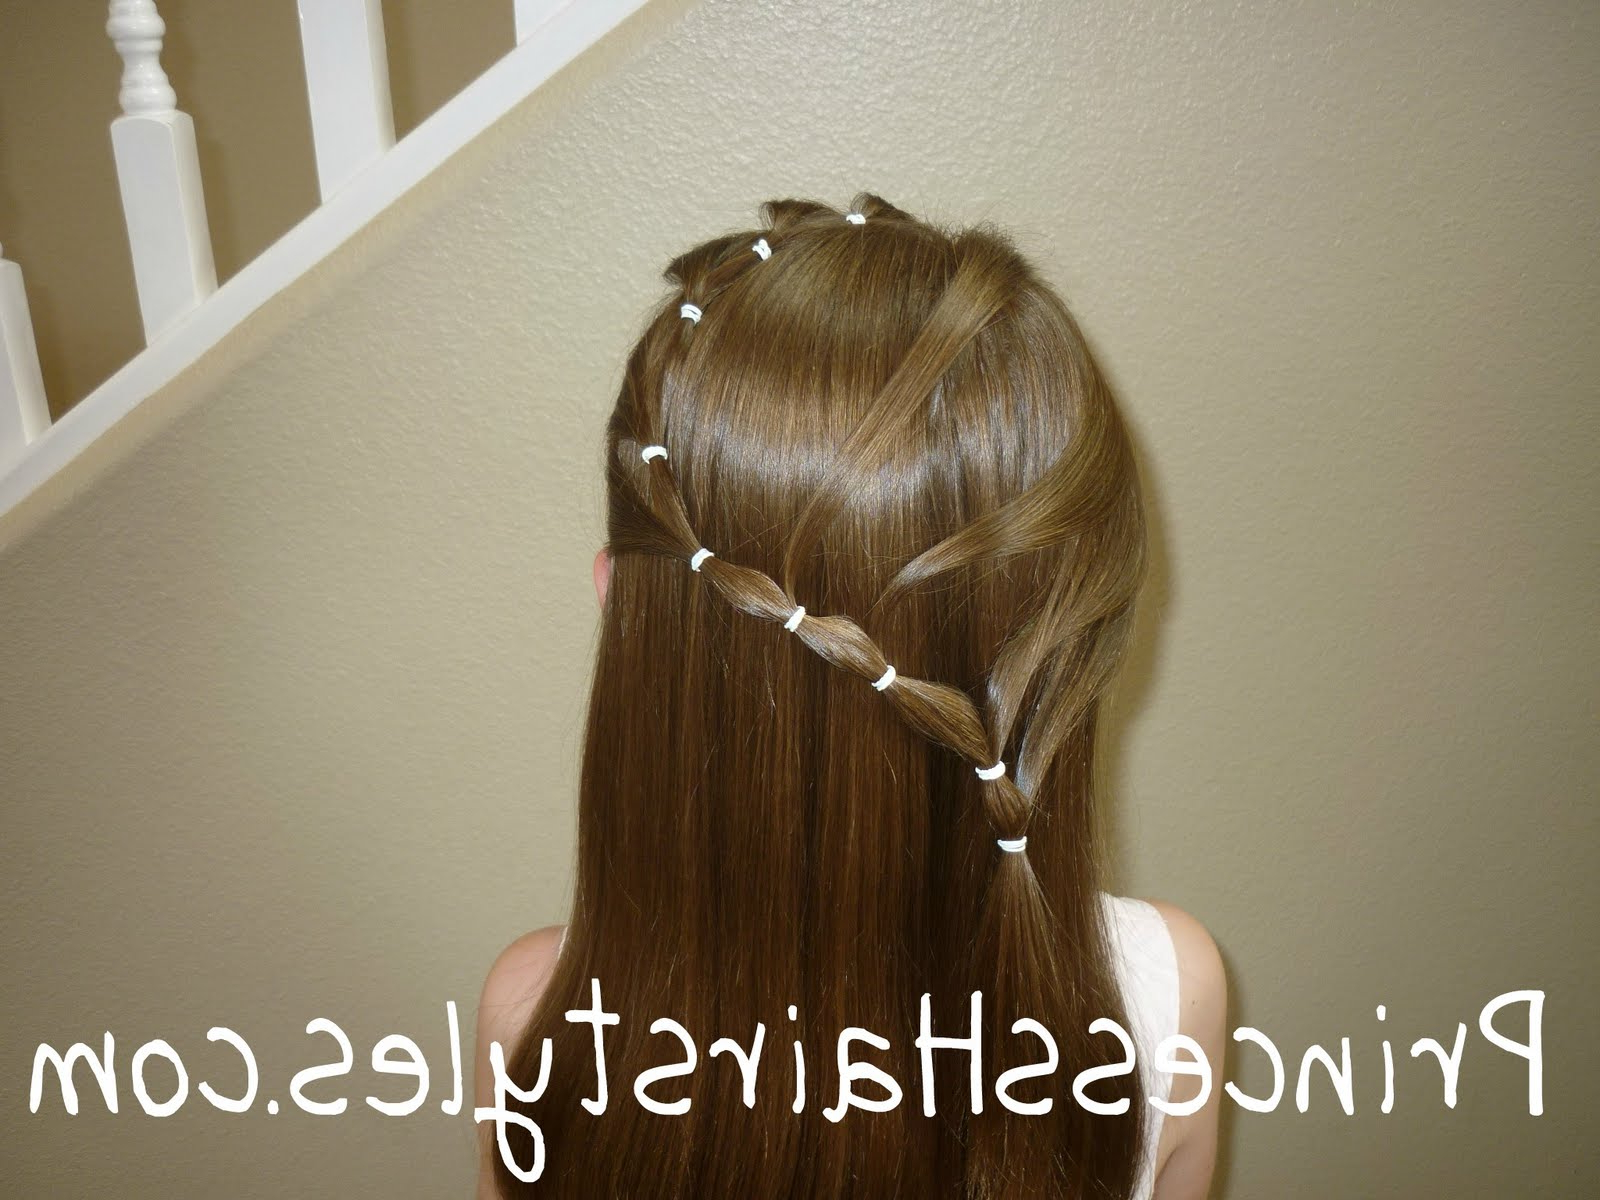 Well Known Curvy Braid Hairstyles And Long Tails Regarding Elastic Curvy Braid Hairstyle (View 16 of 20)